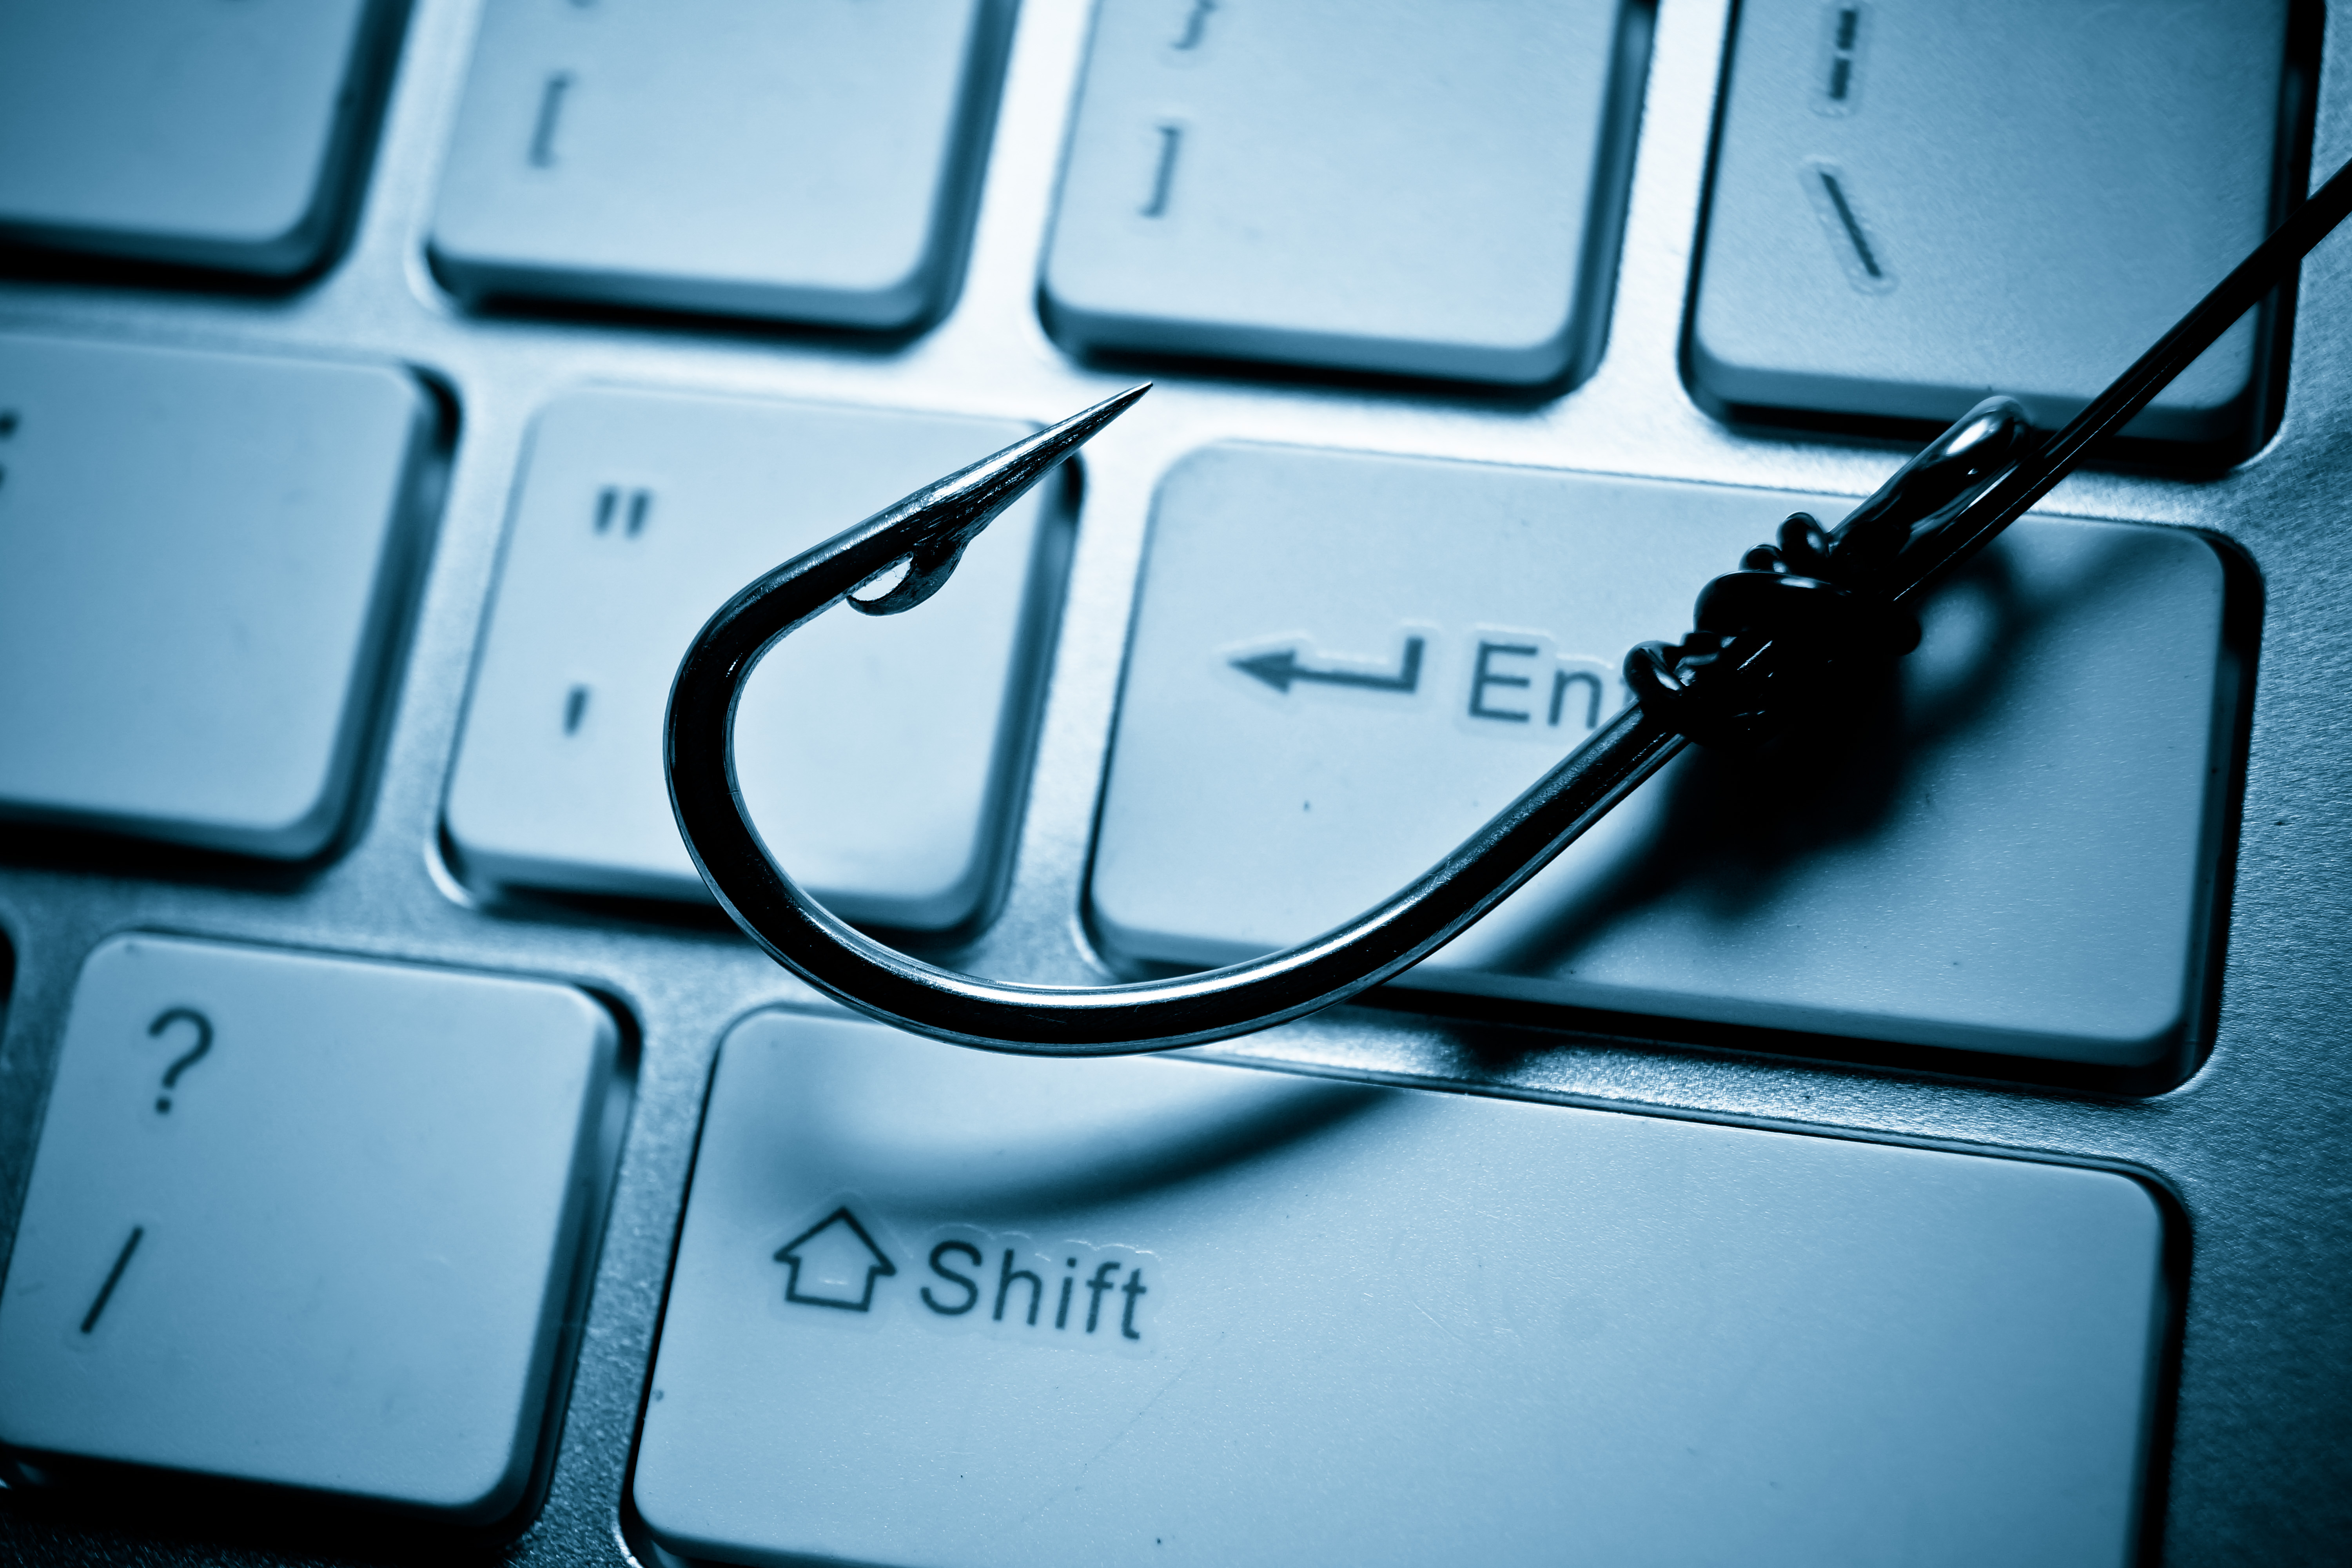 phishing tips to secure your network